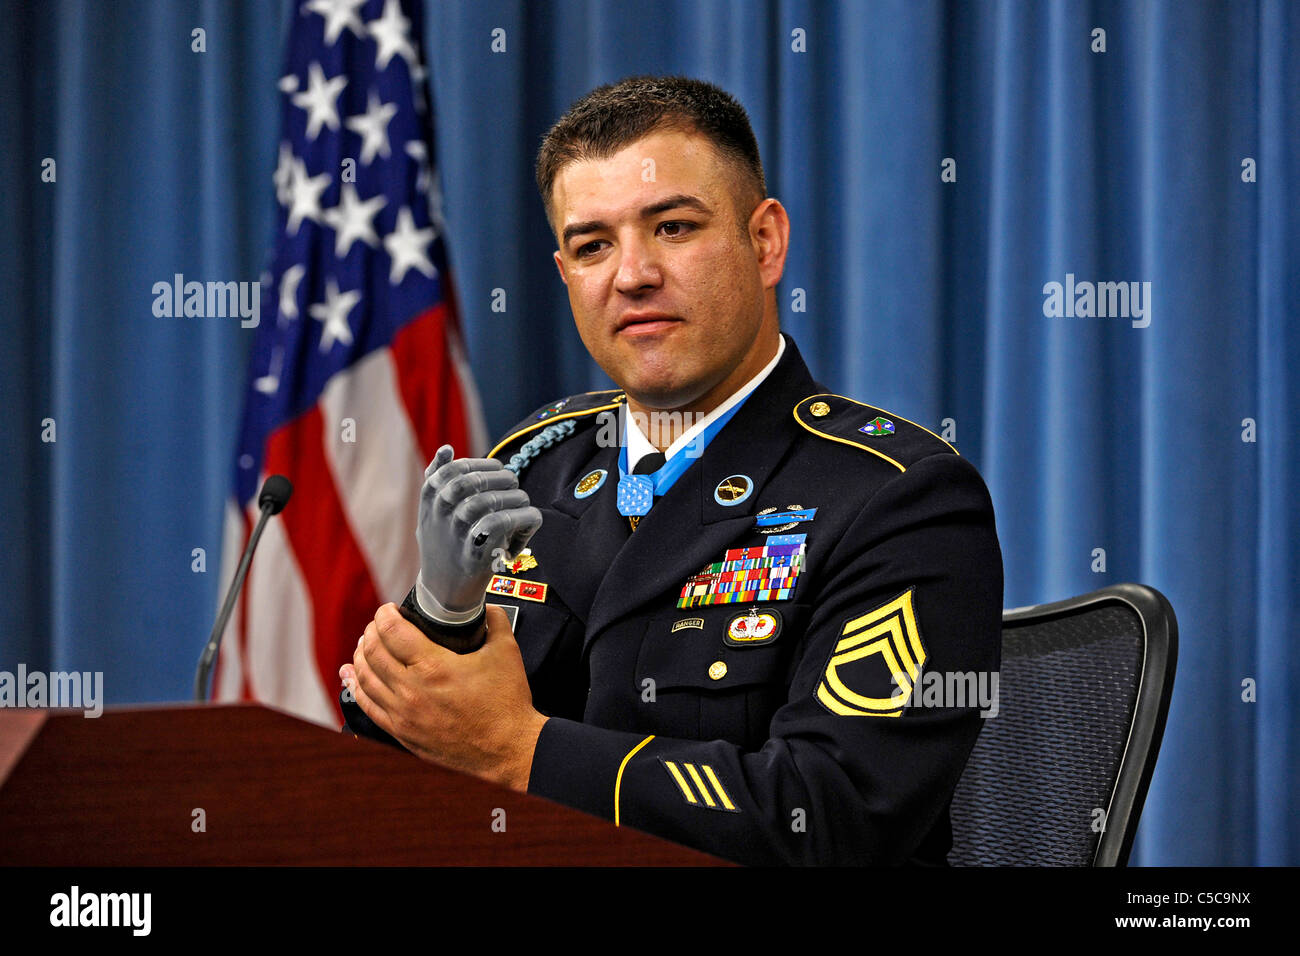 Medal of Honor recipient US Army Sgt. 1st. Class Leroy Petry touches his state-of-the-art prosthesis which replaced - Stock Image